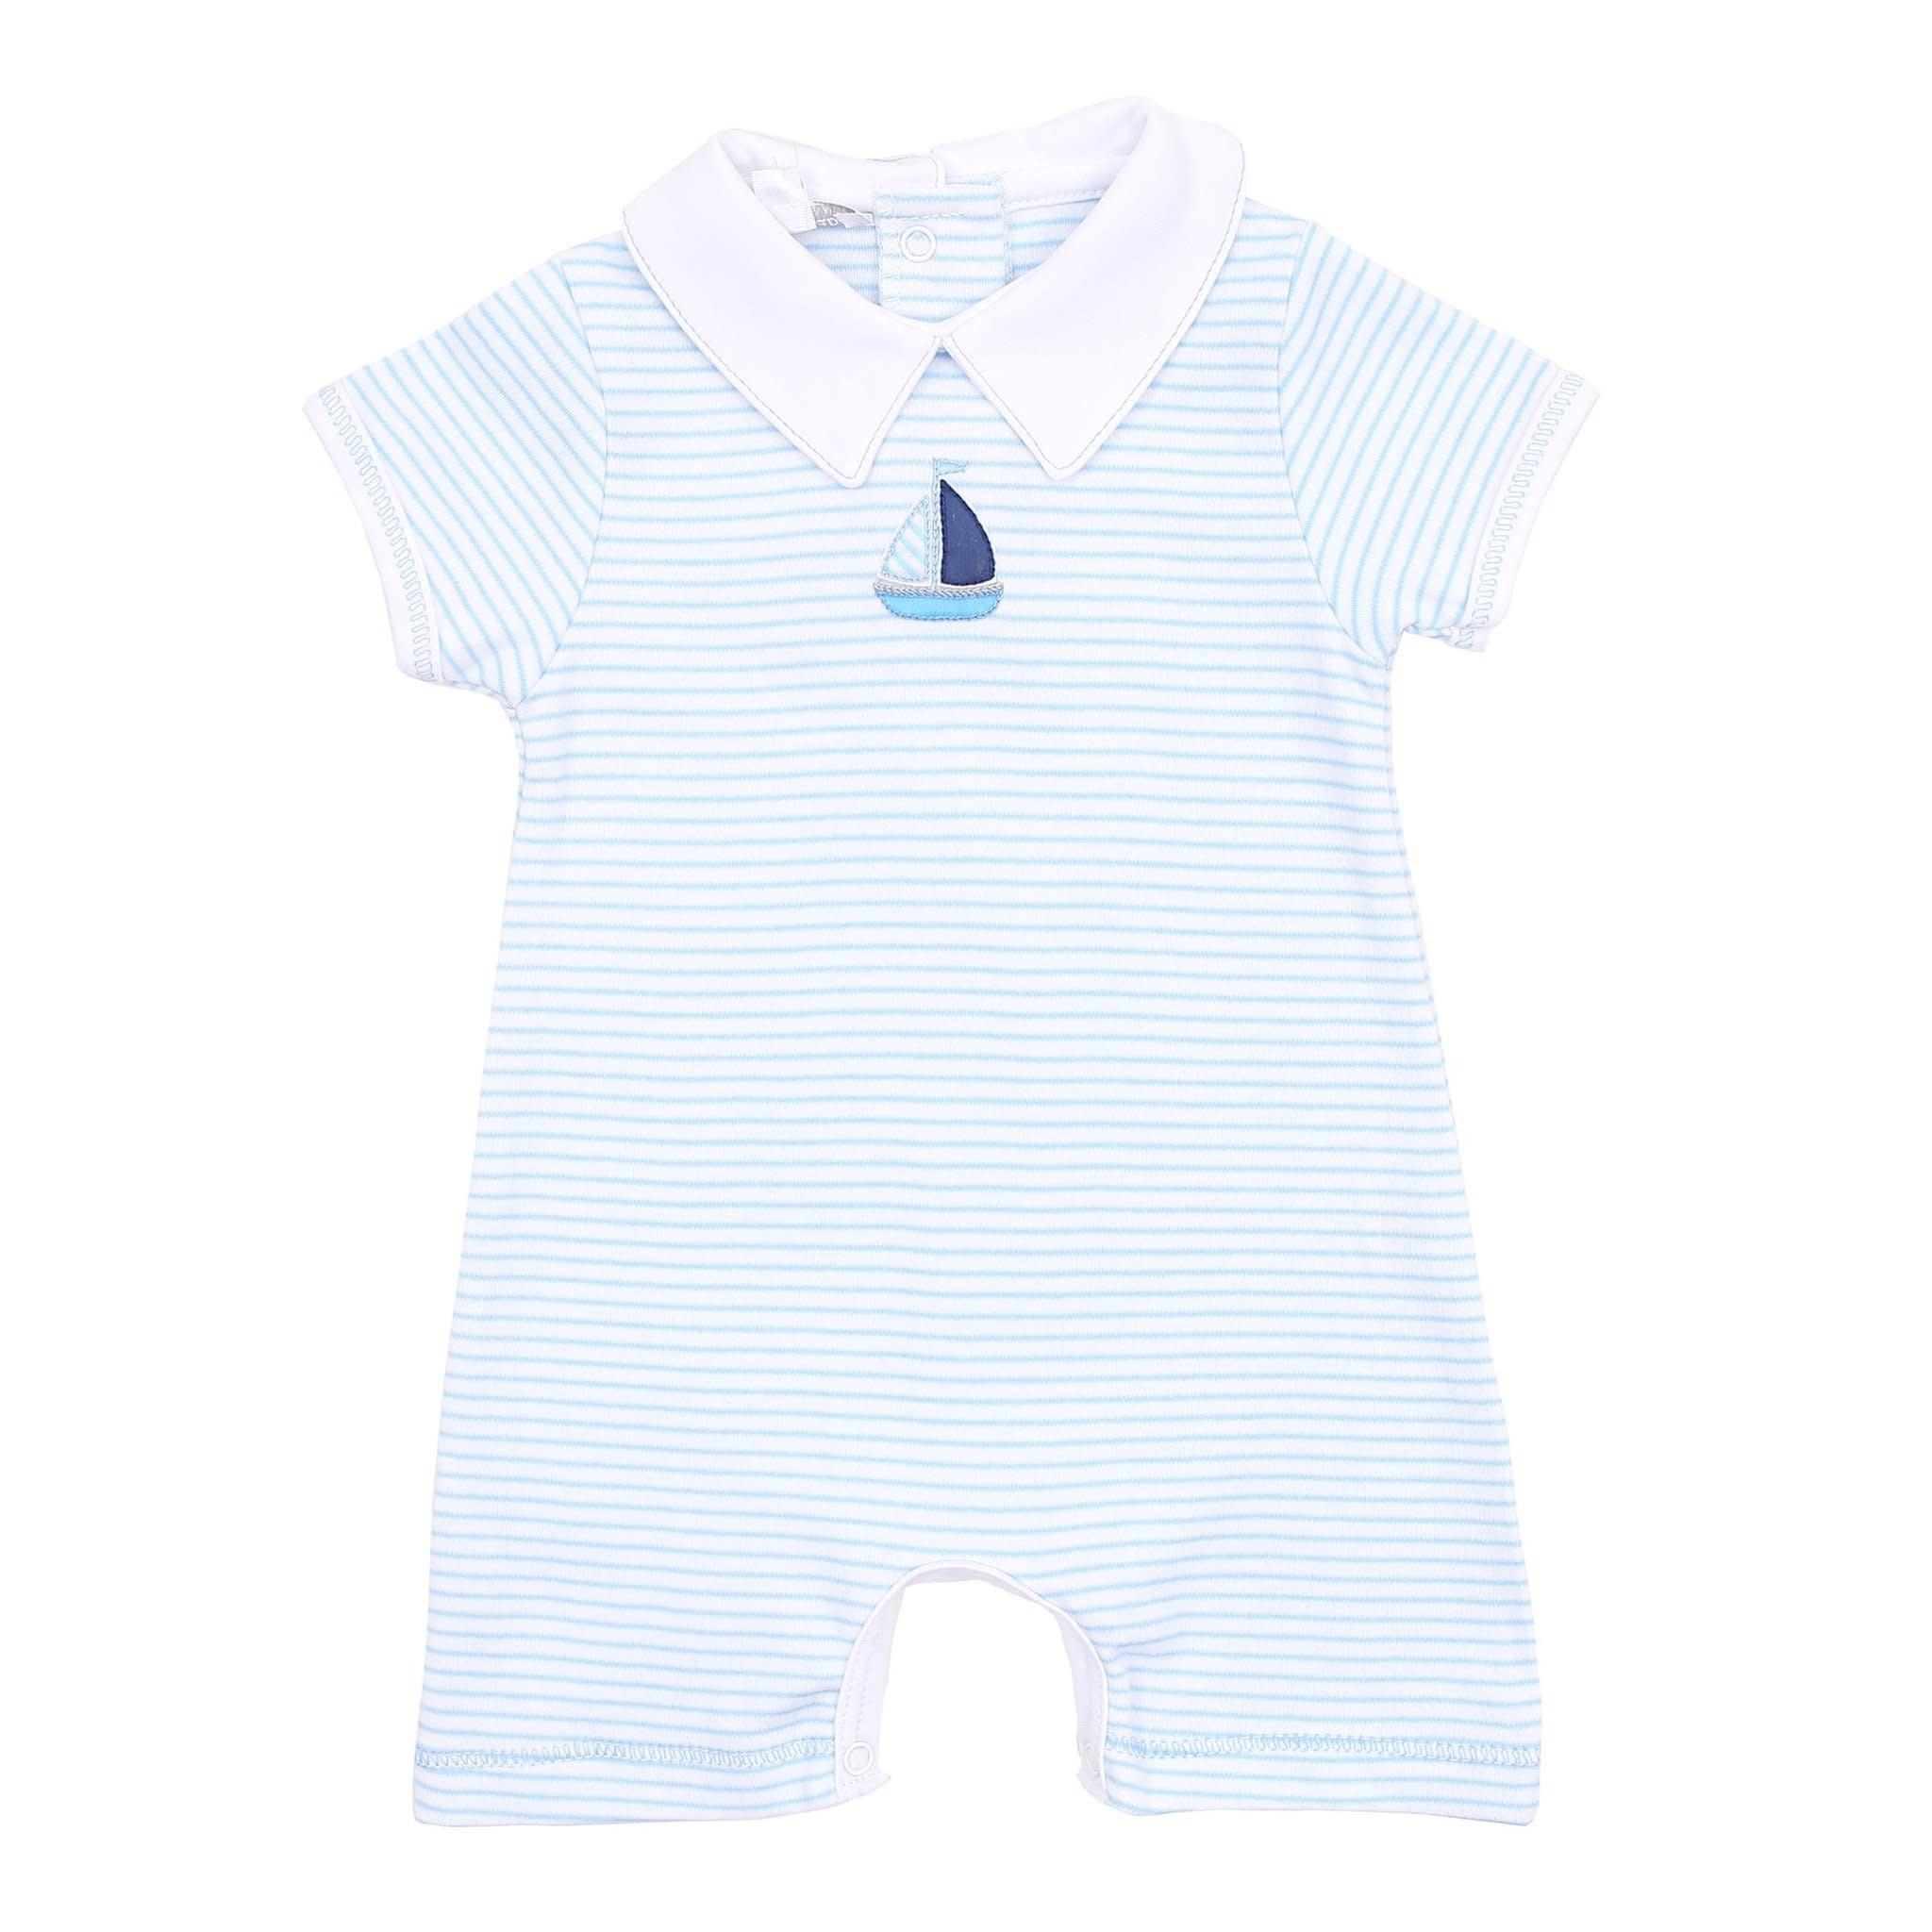 Magnolia Baby Magnolia Baby Sailor Collared Short Playsuit